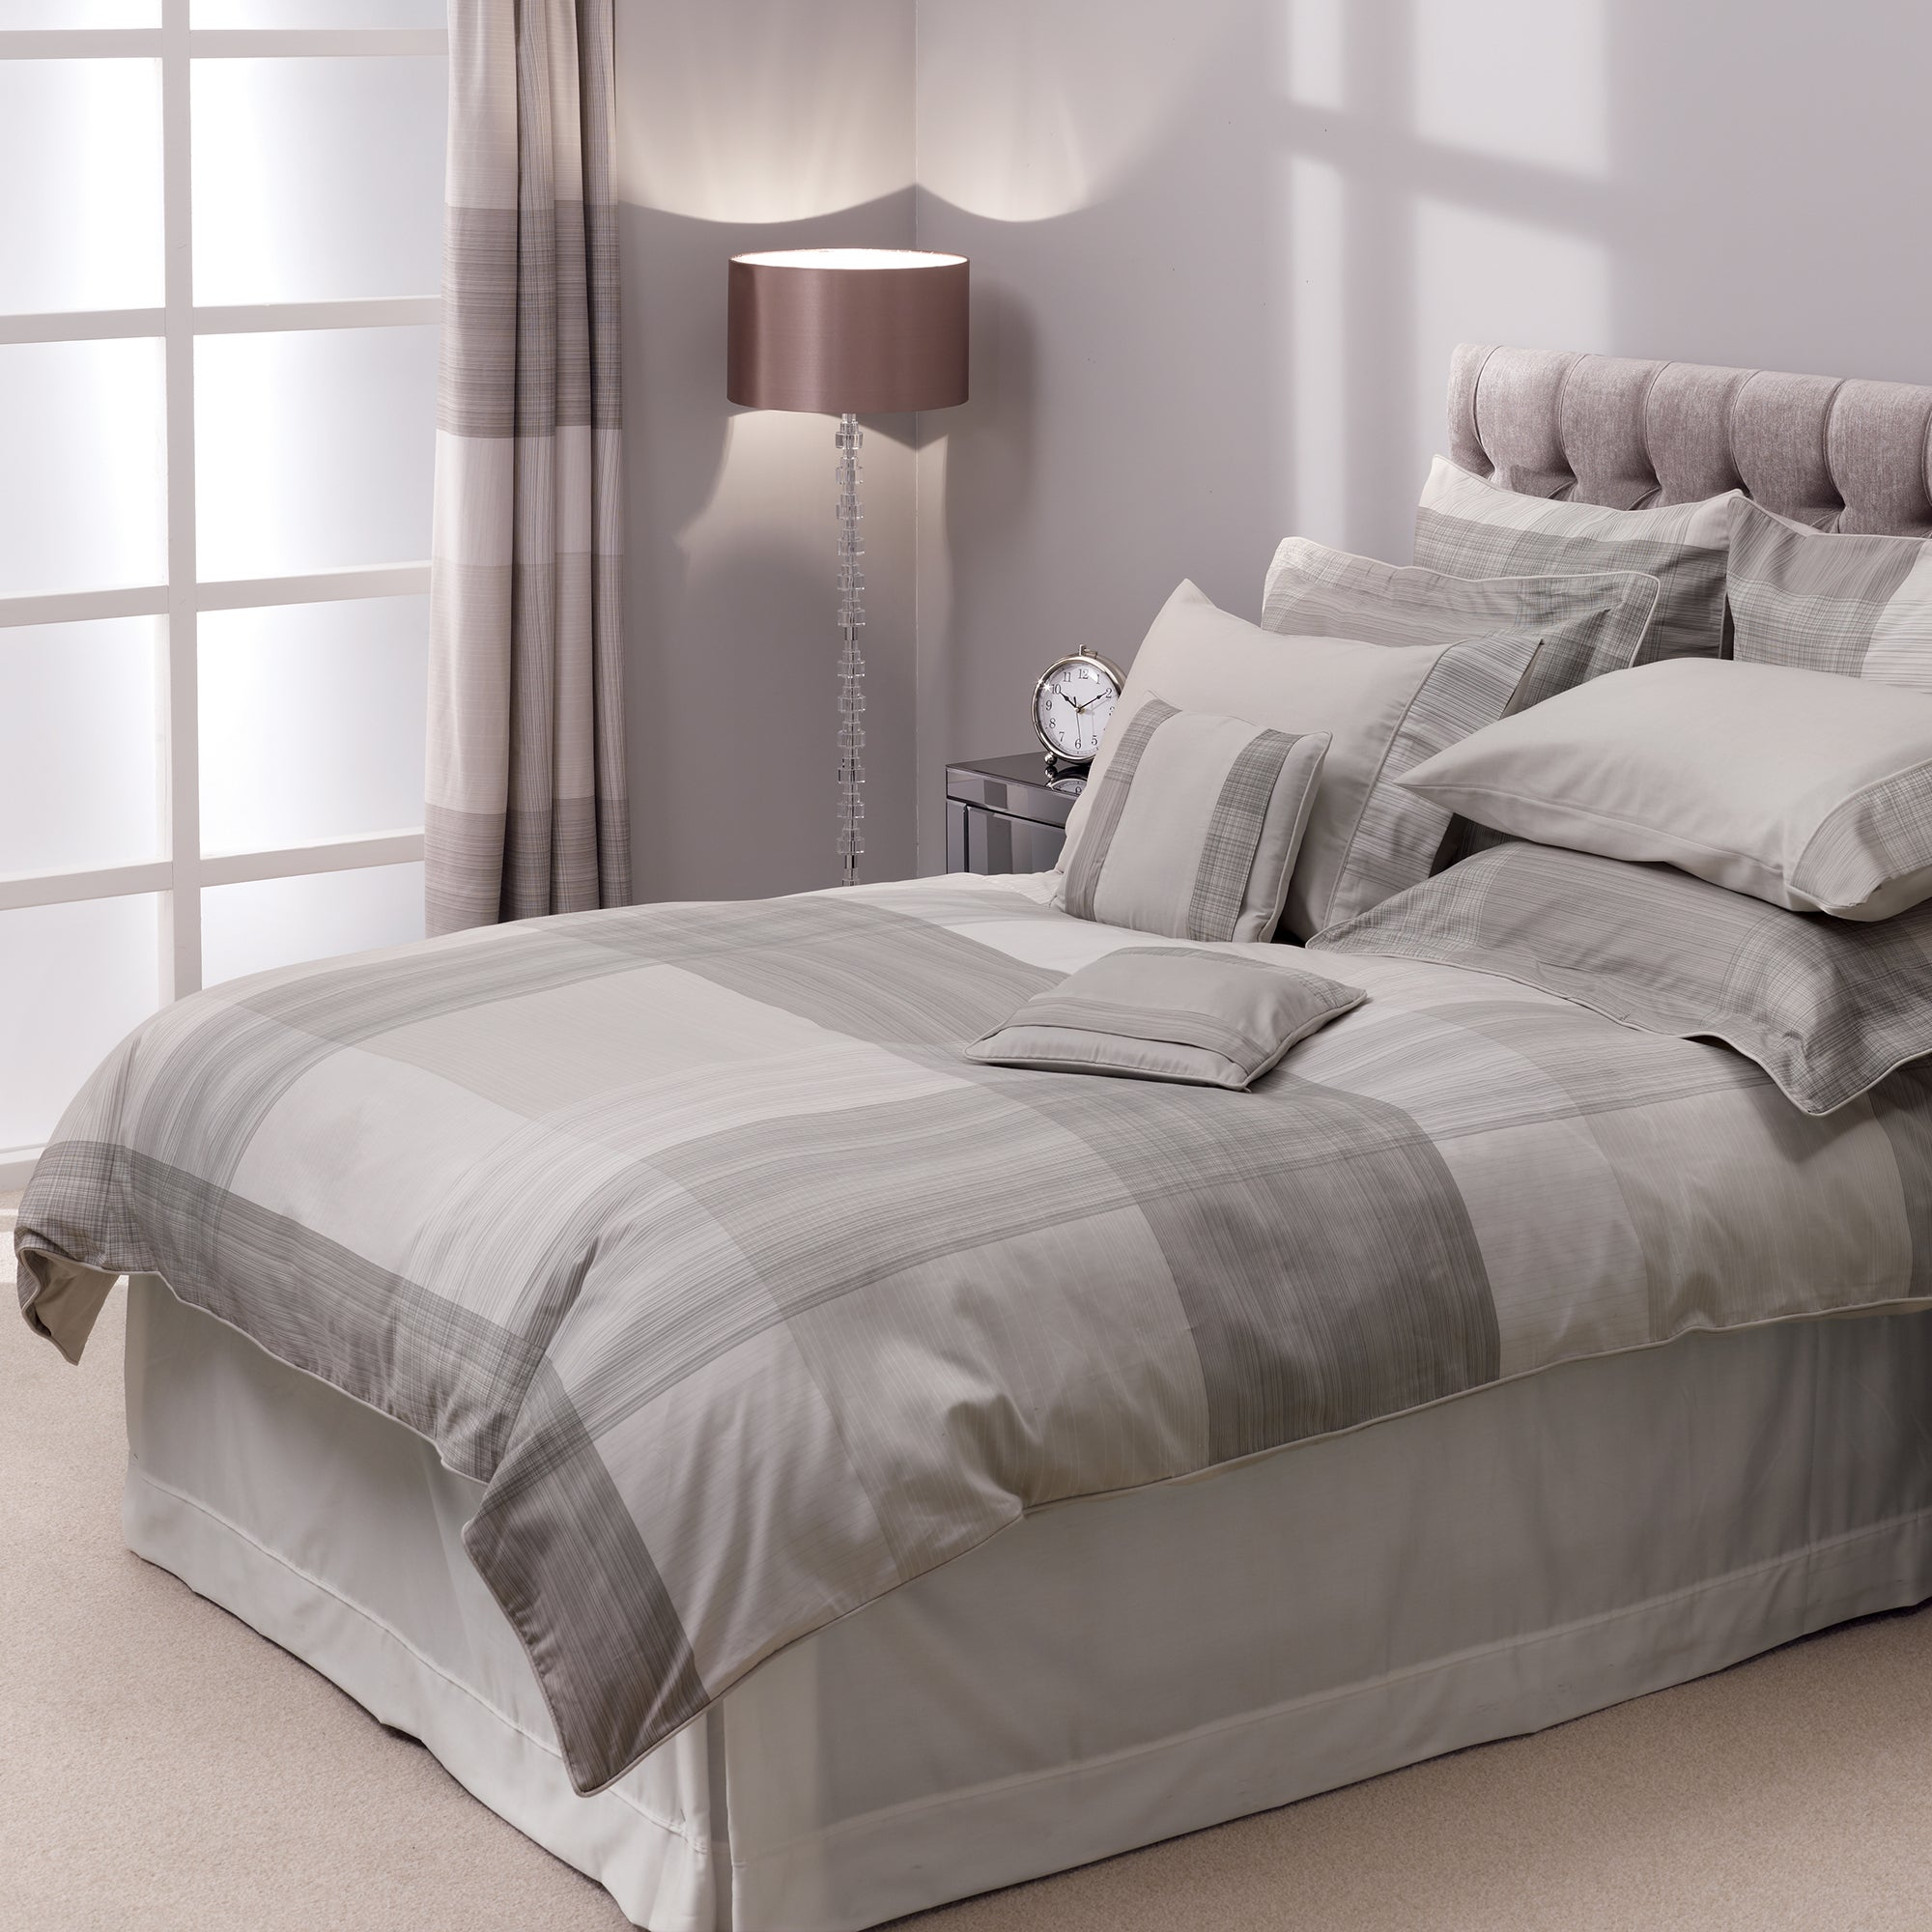 Grey Hotel Cannes Collection Duvet Cover